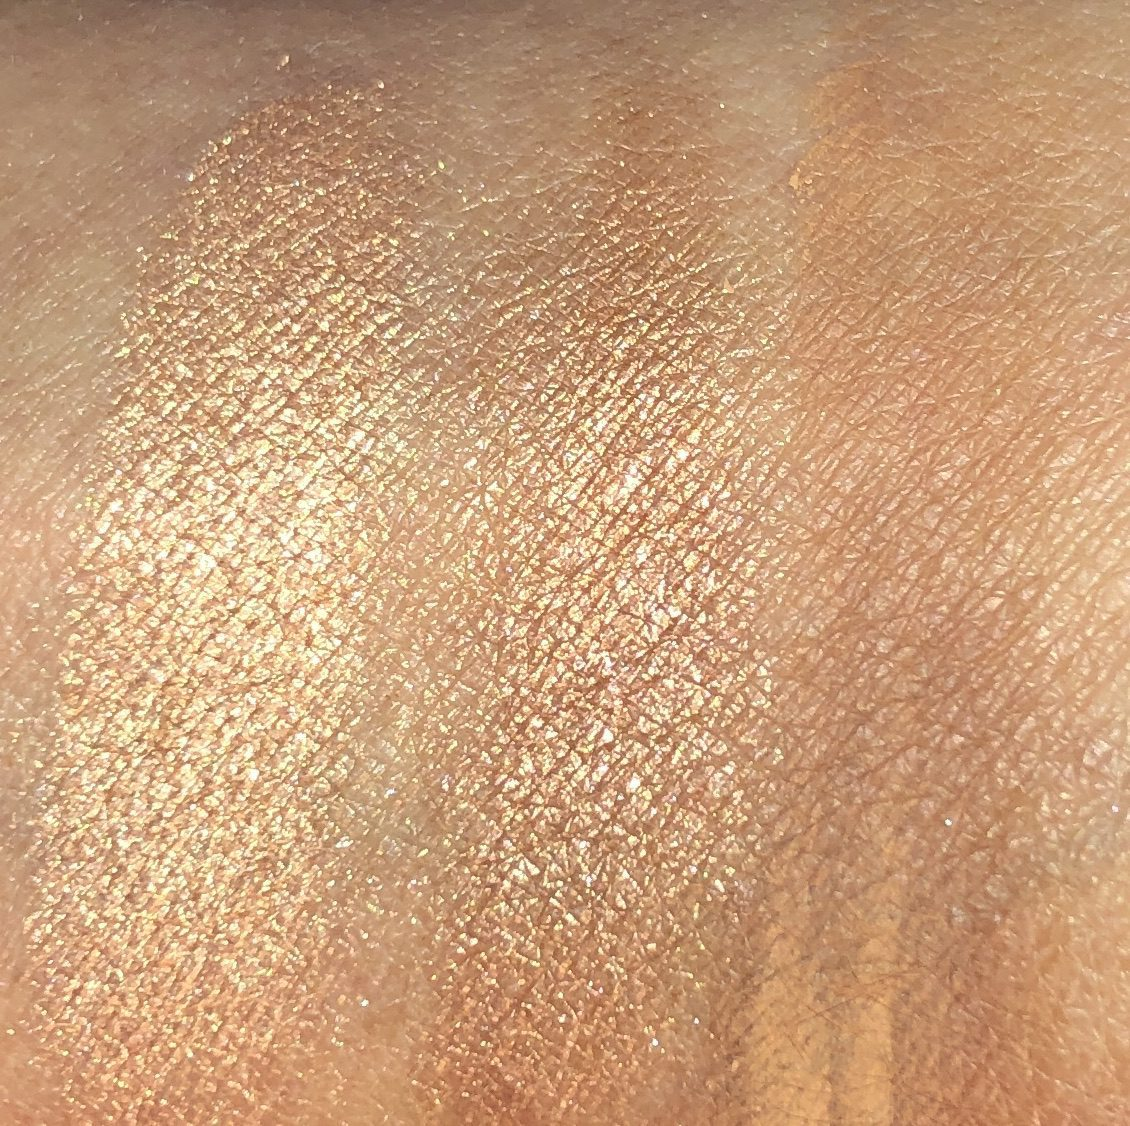 SWATCHES HAPPY GLOW SHADES 1, 2, AND 3